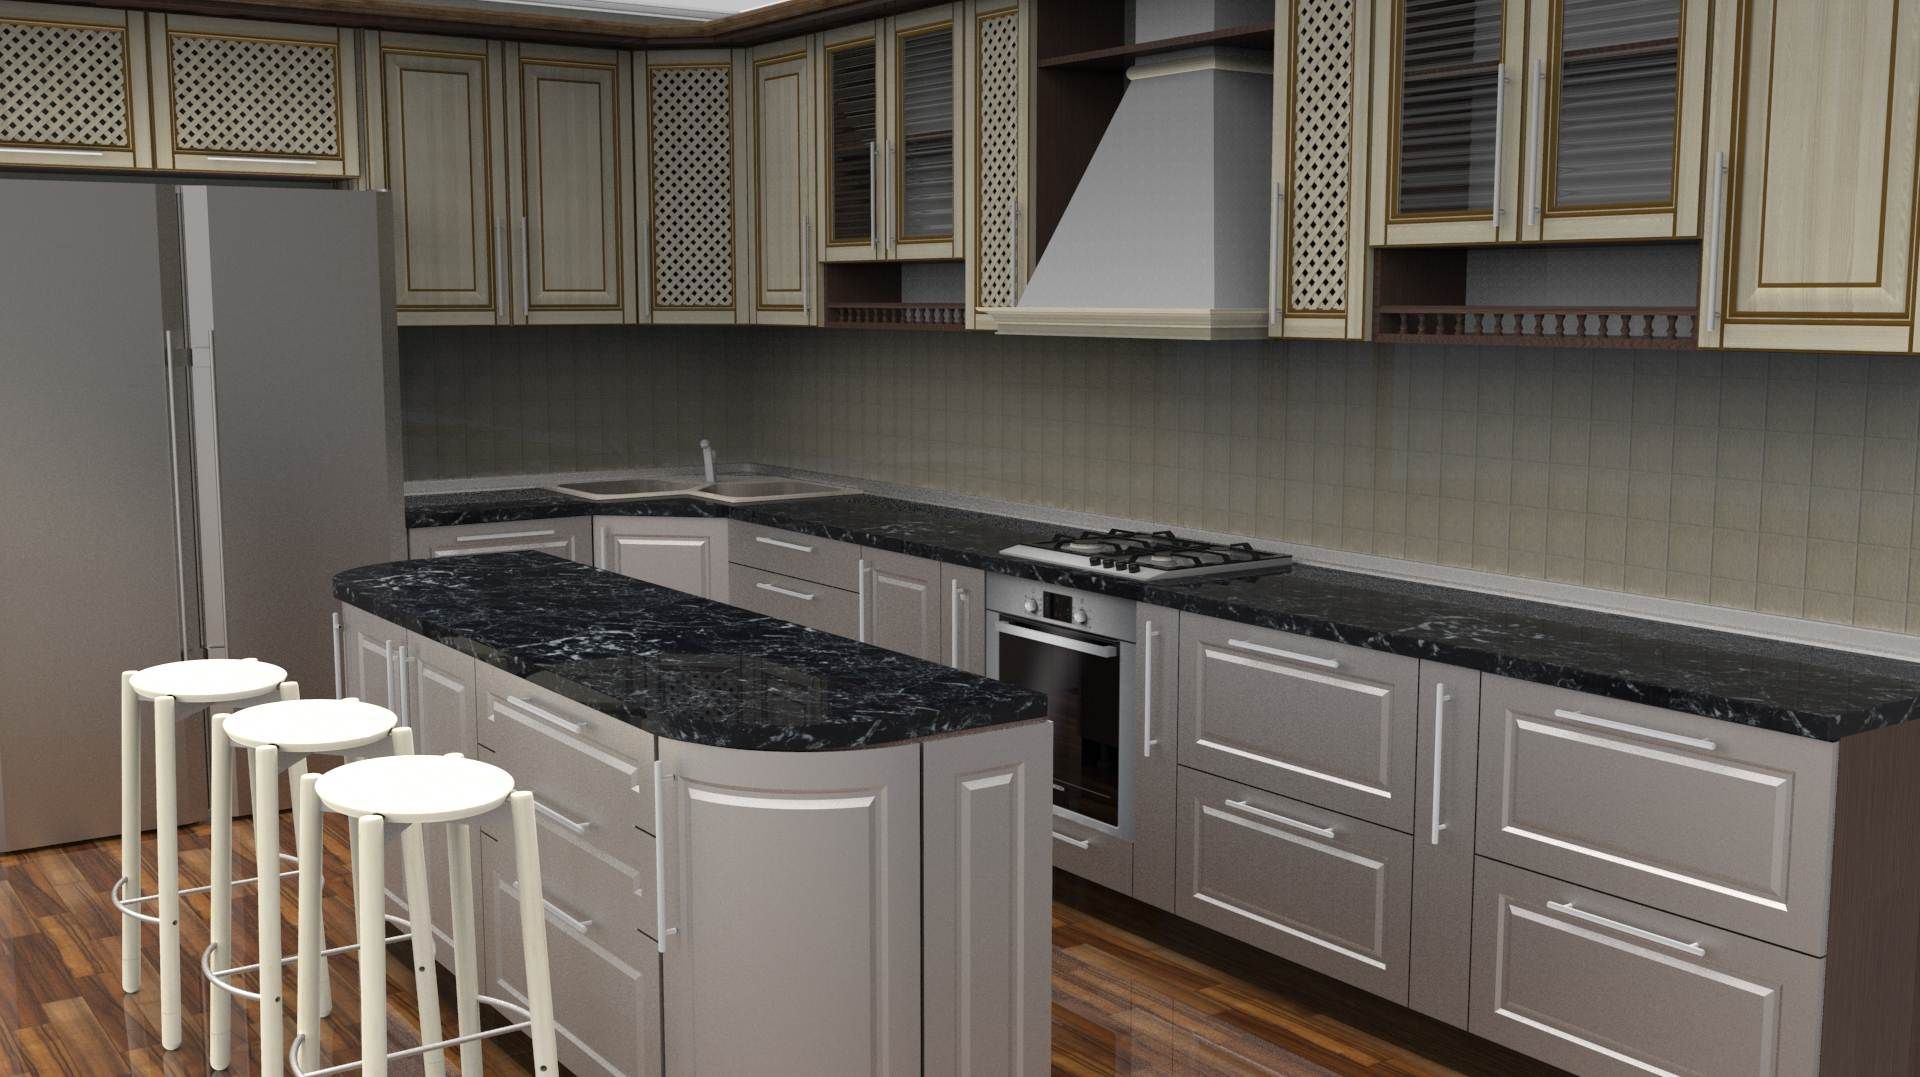 16 Best Online Kitchen Design Software Options Free & Paid  3D Magnificent Free Software Kitchen Design Review